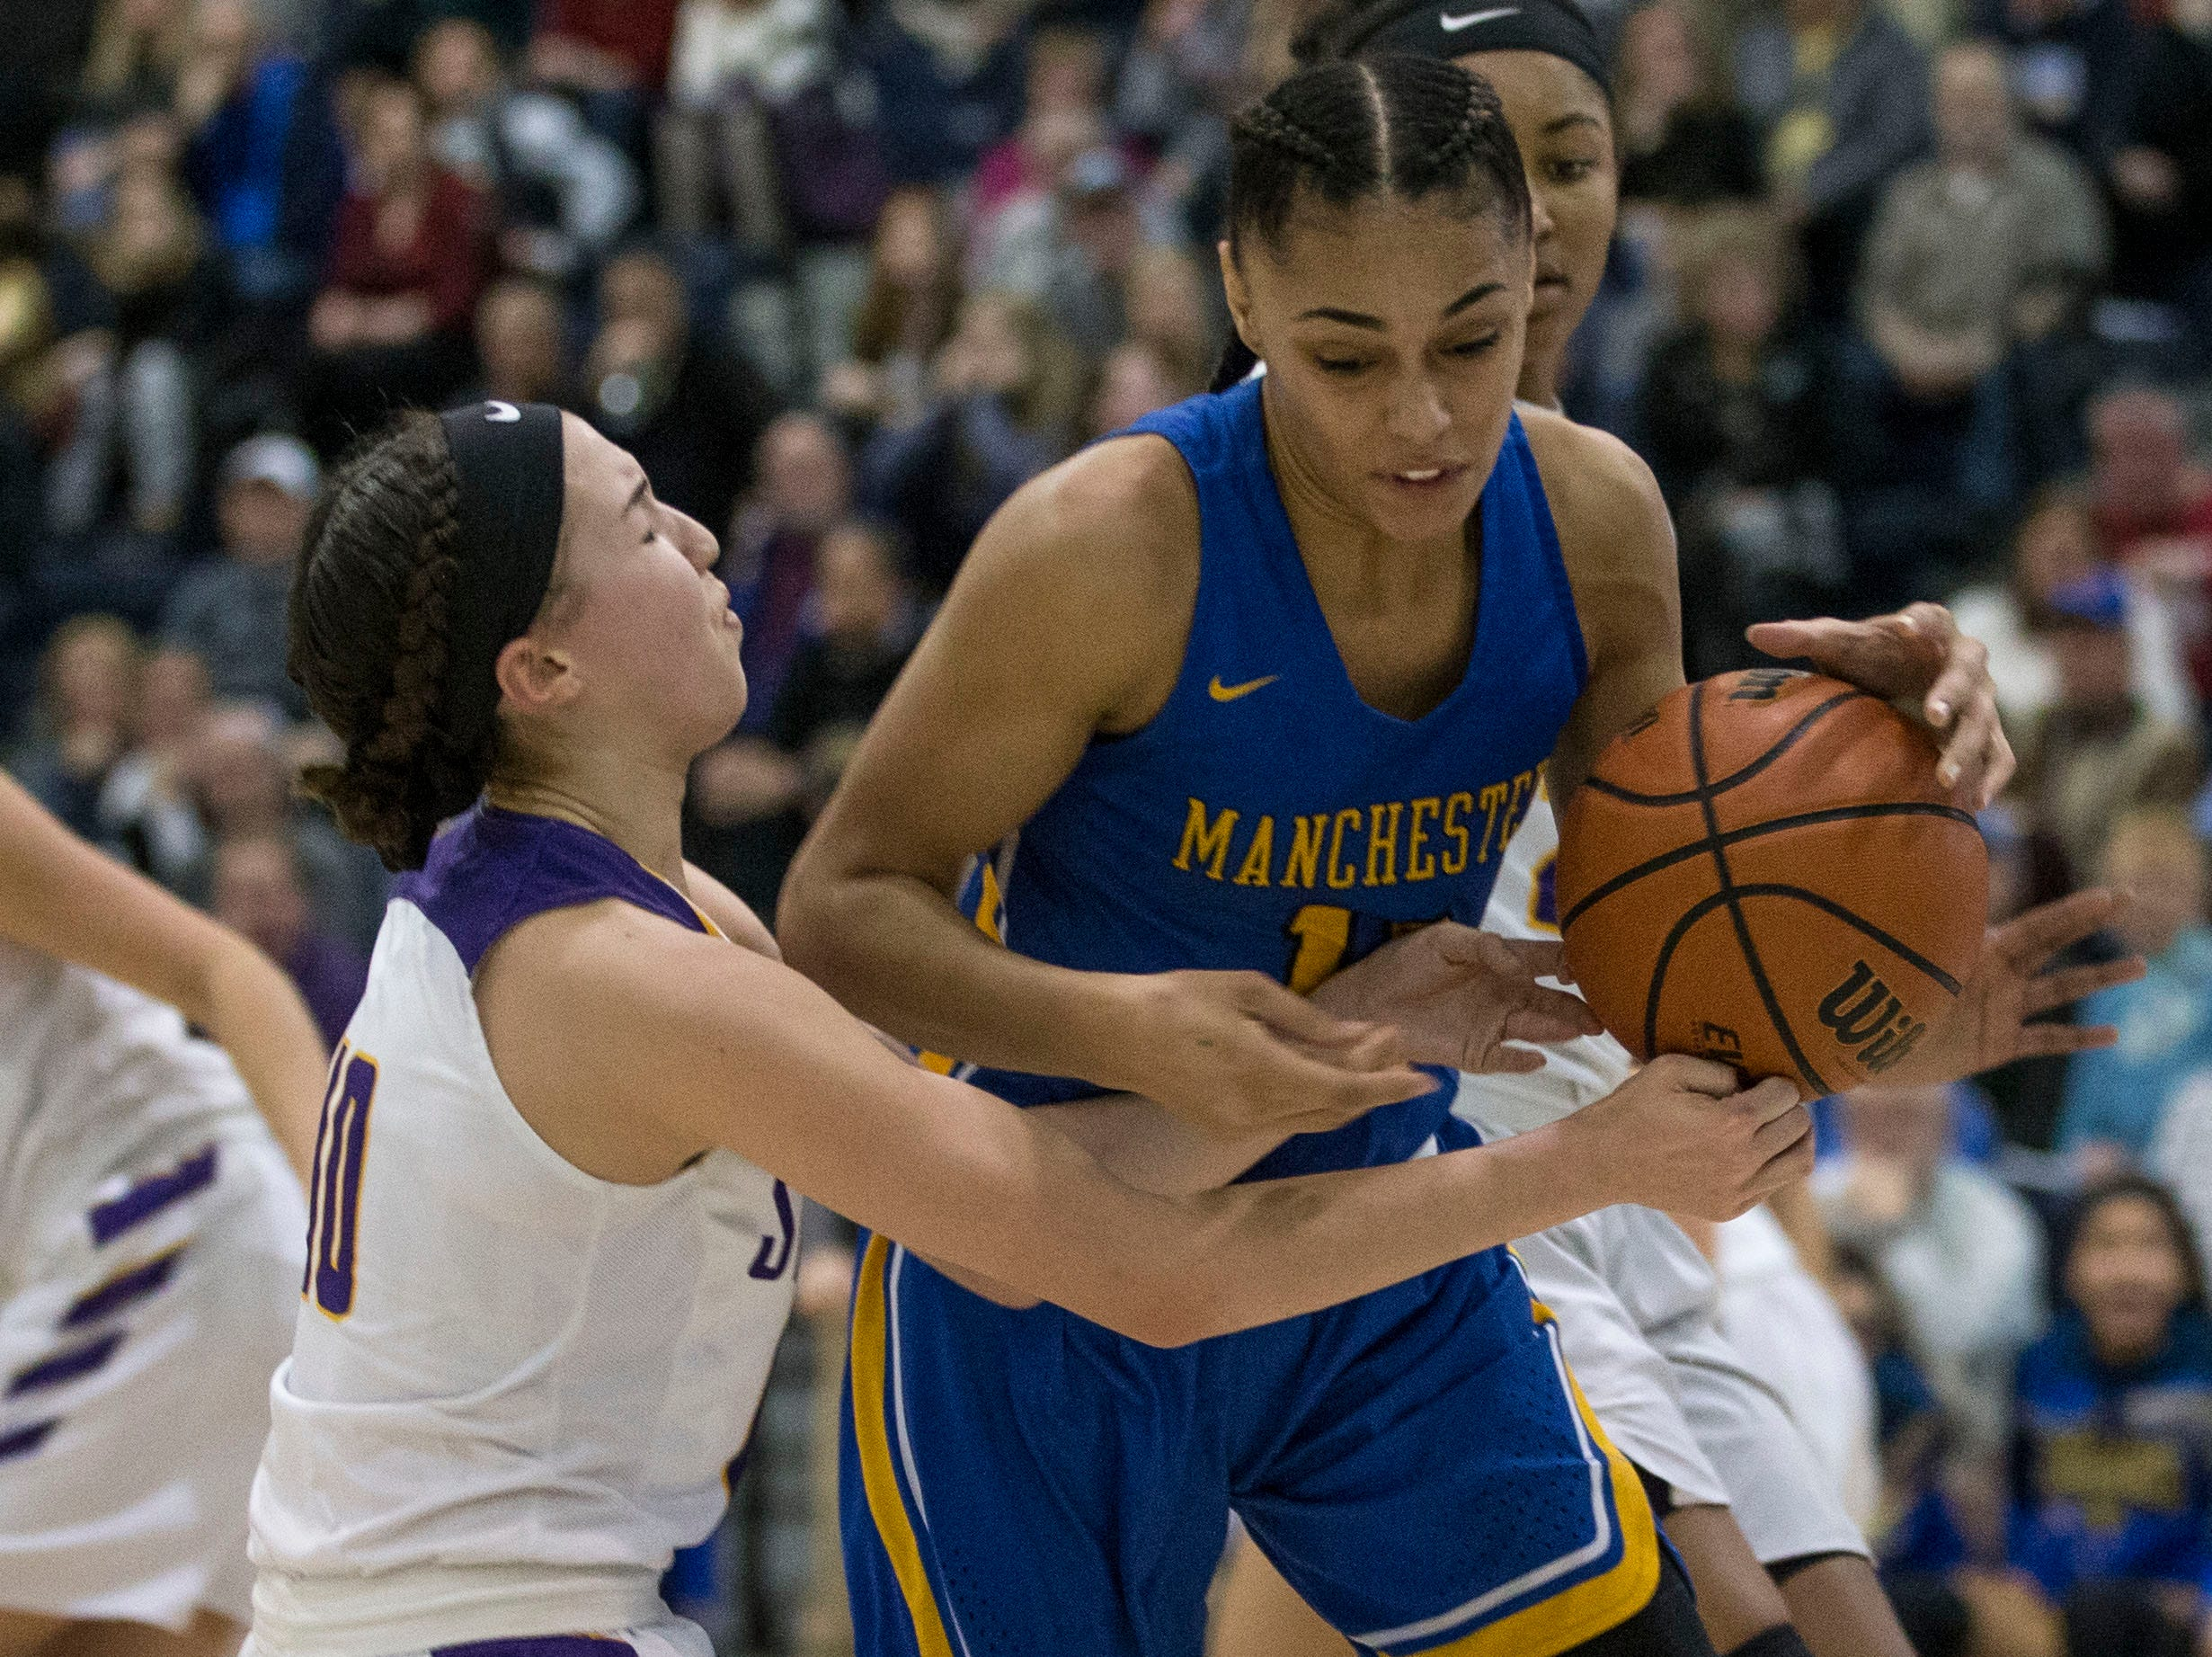 Shore Conference Tournament semifinals featuring St. Rose vs Manchester. St. Rose's Abigail Antognoli and Manchester's Leilani Correa battle for a rebound.Toms River, NJTuesday, February 19, 2019